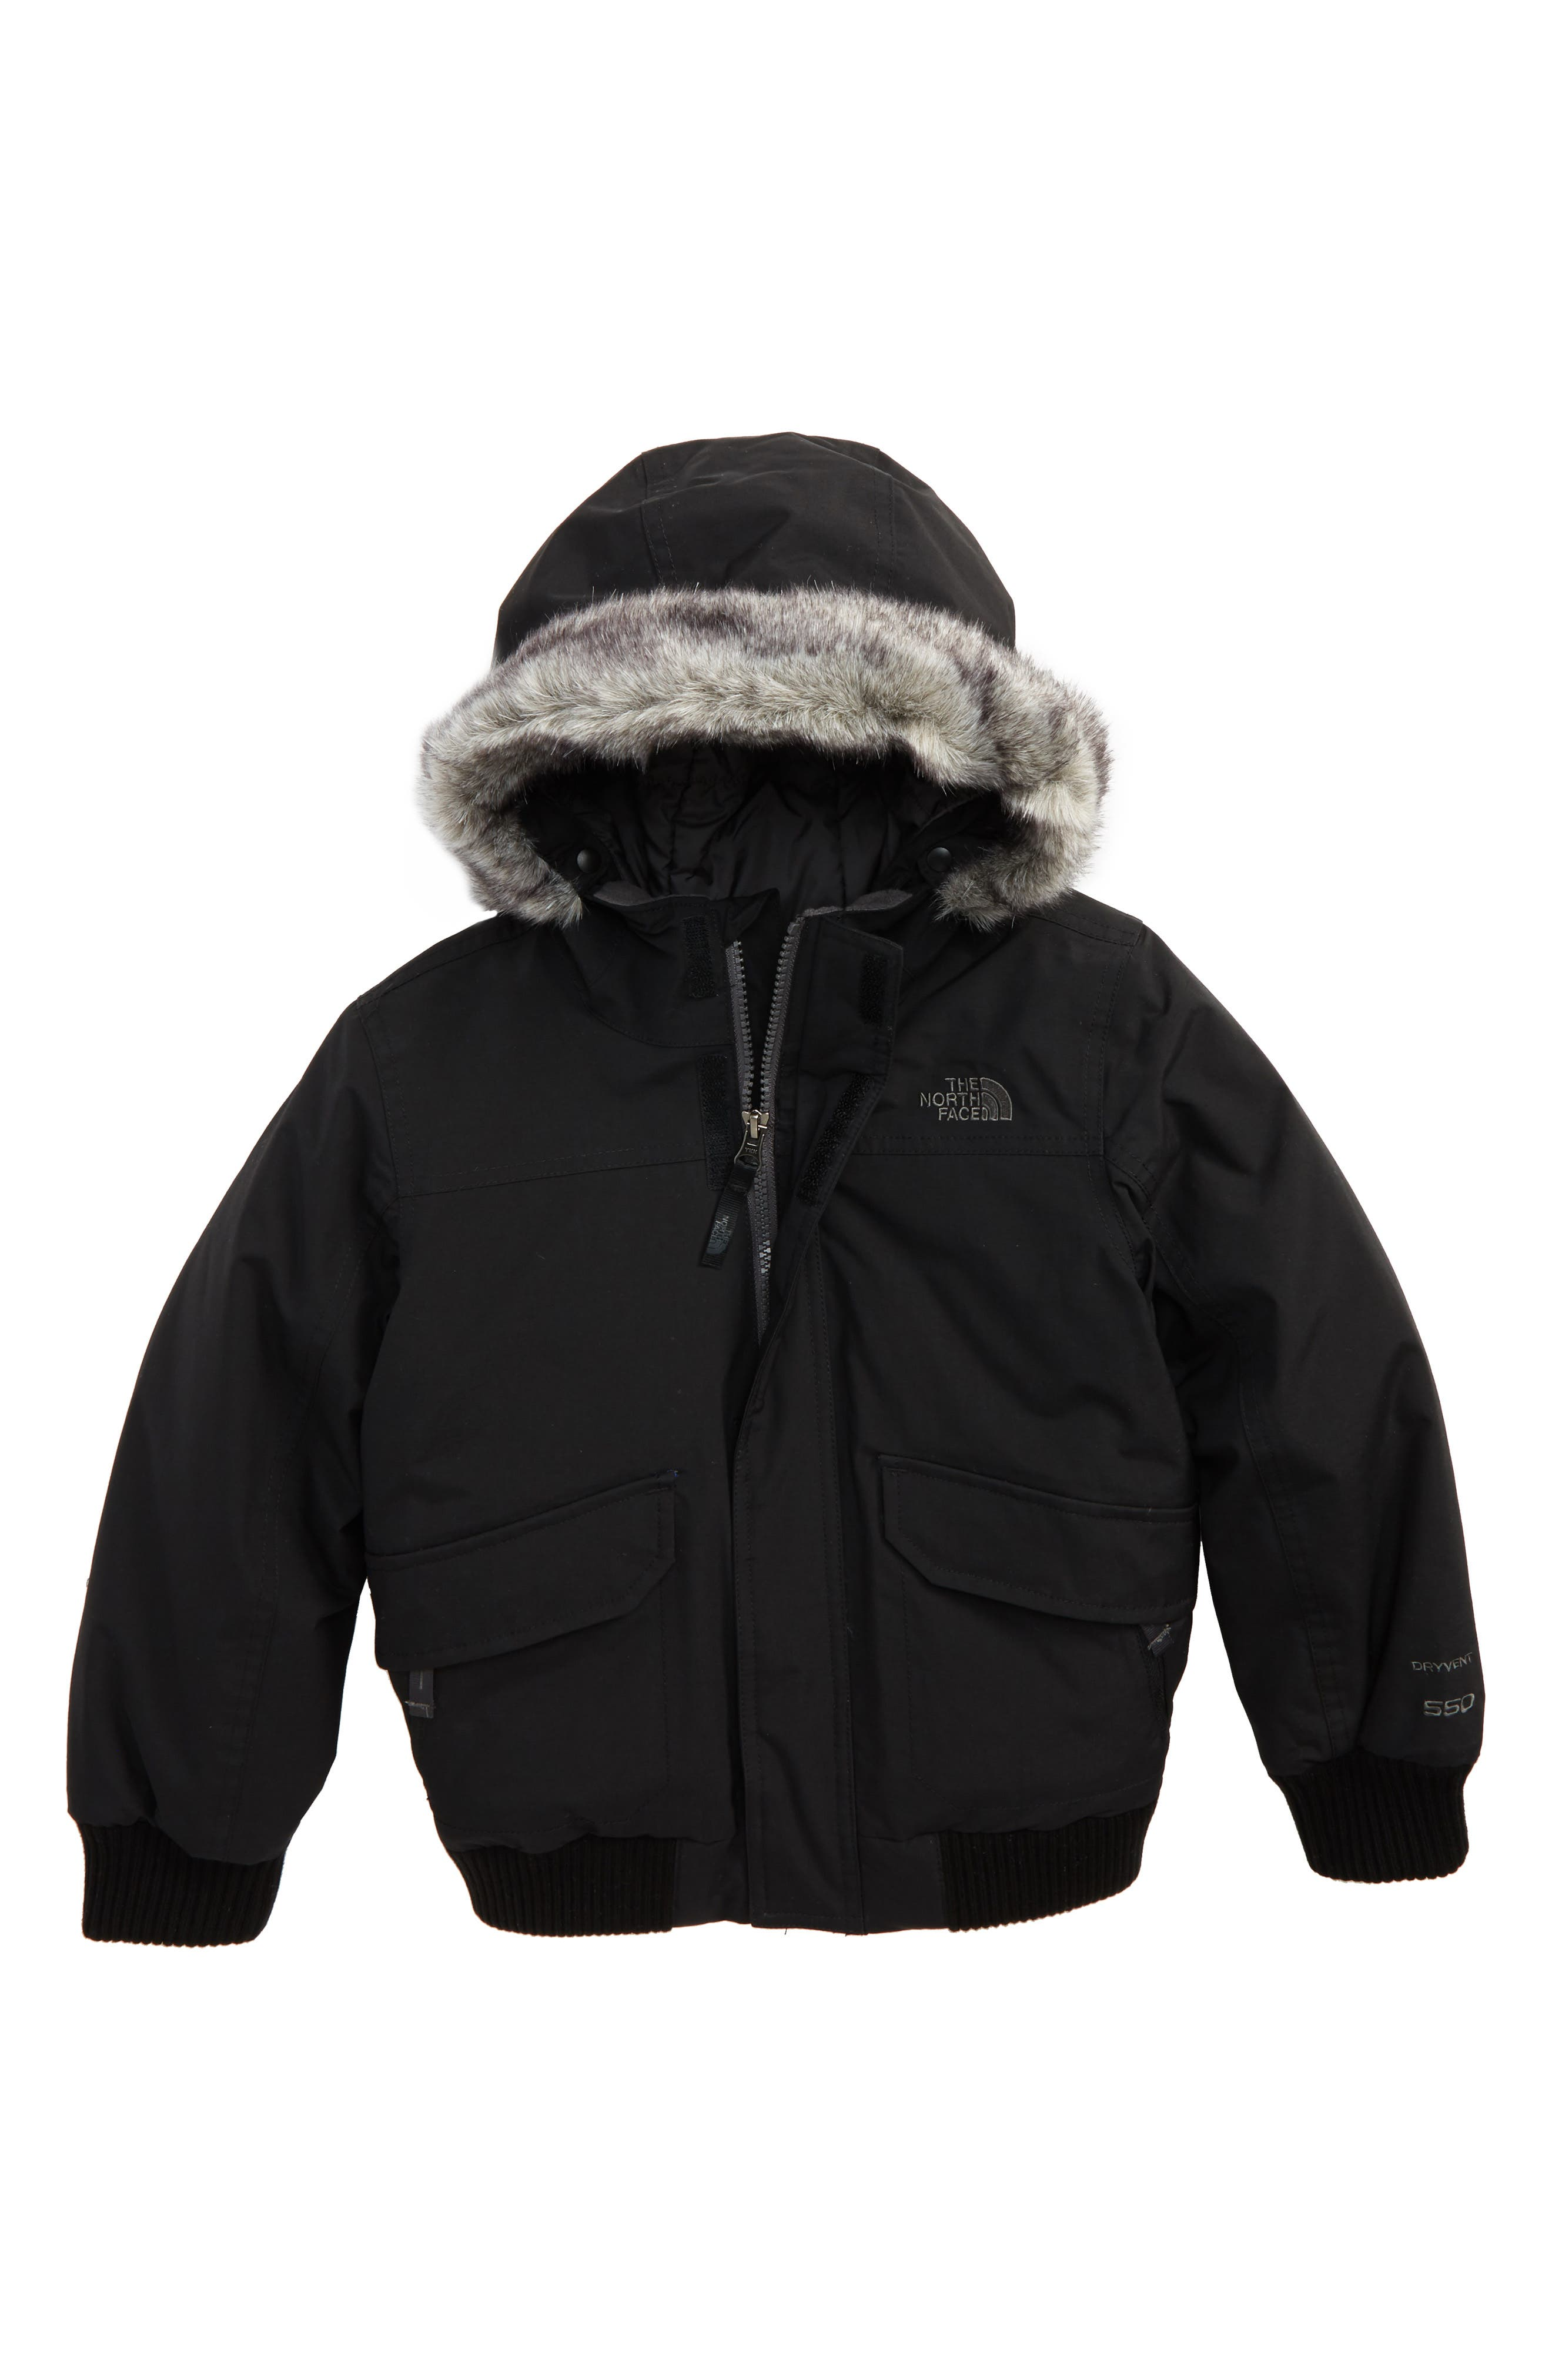 Boys The North Face Gotham Hooded Waterproof 550Fill Power Down Jacket Size 6  Green